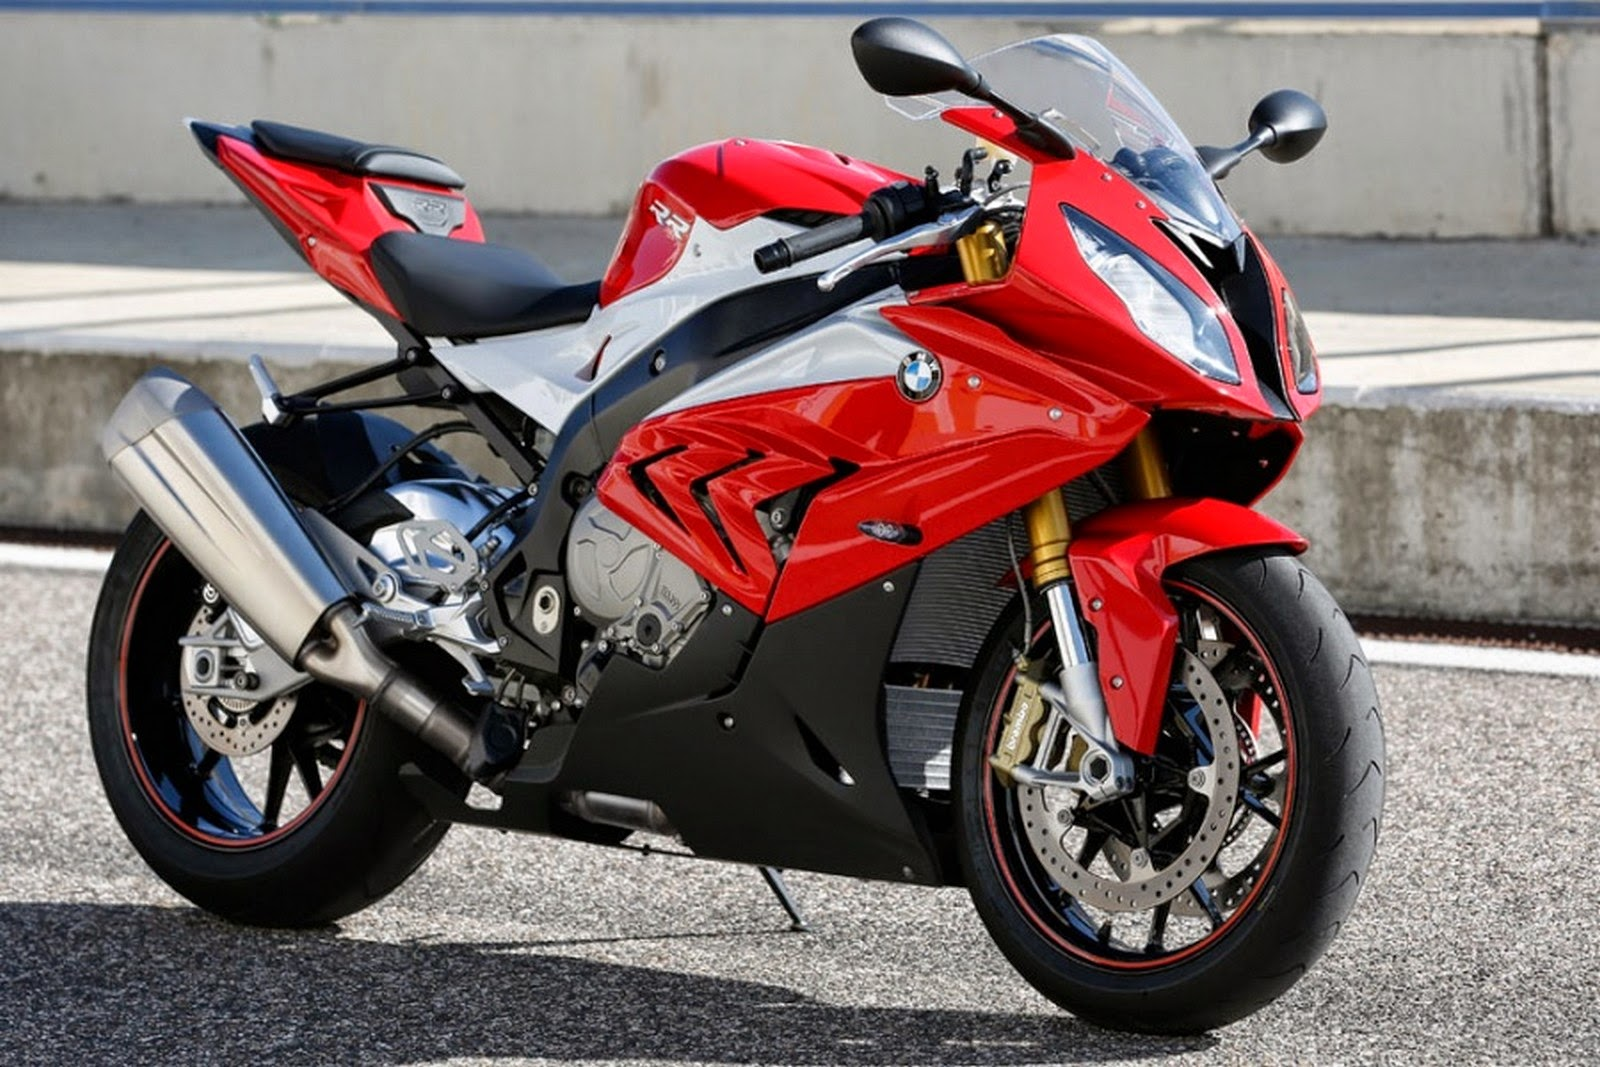 new motorcycle 2015 bmw s1000rr colors rumors changes. Black Bedroom Furniture Sets. Home Design Ideas